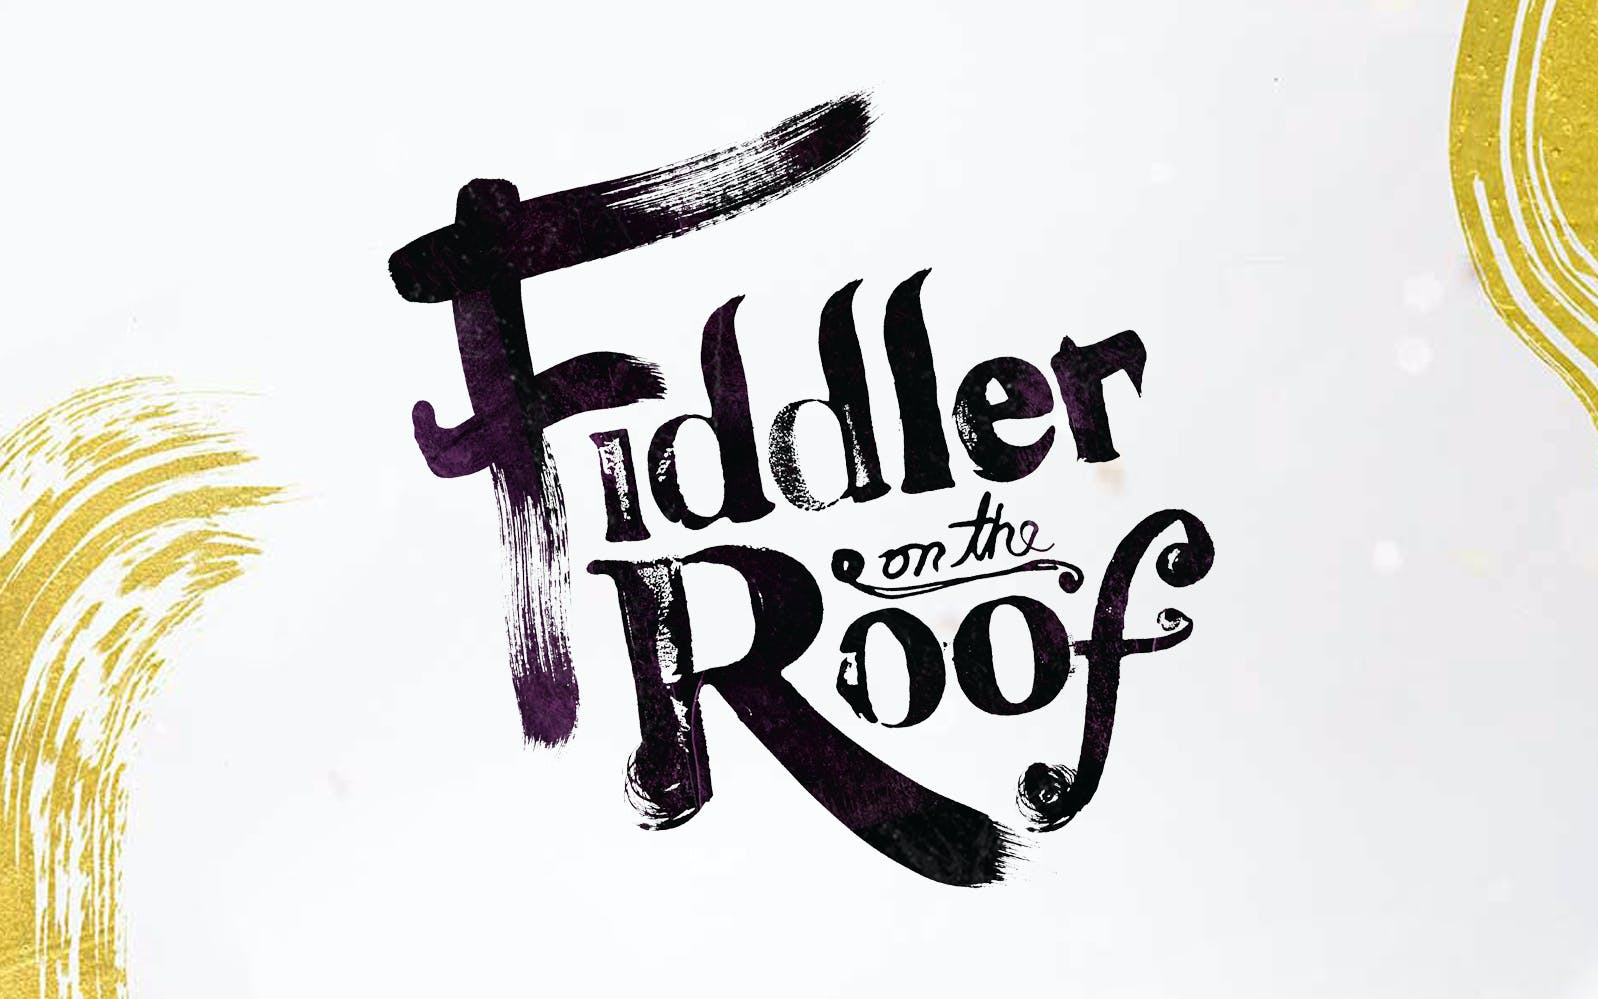 fiddler on the roof-1